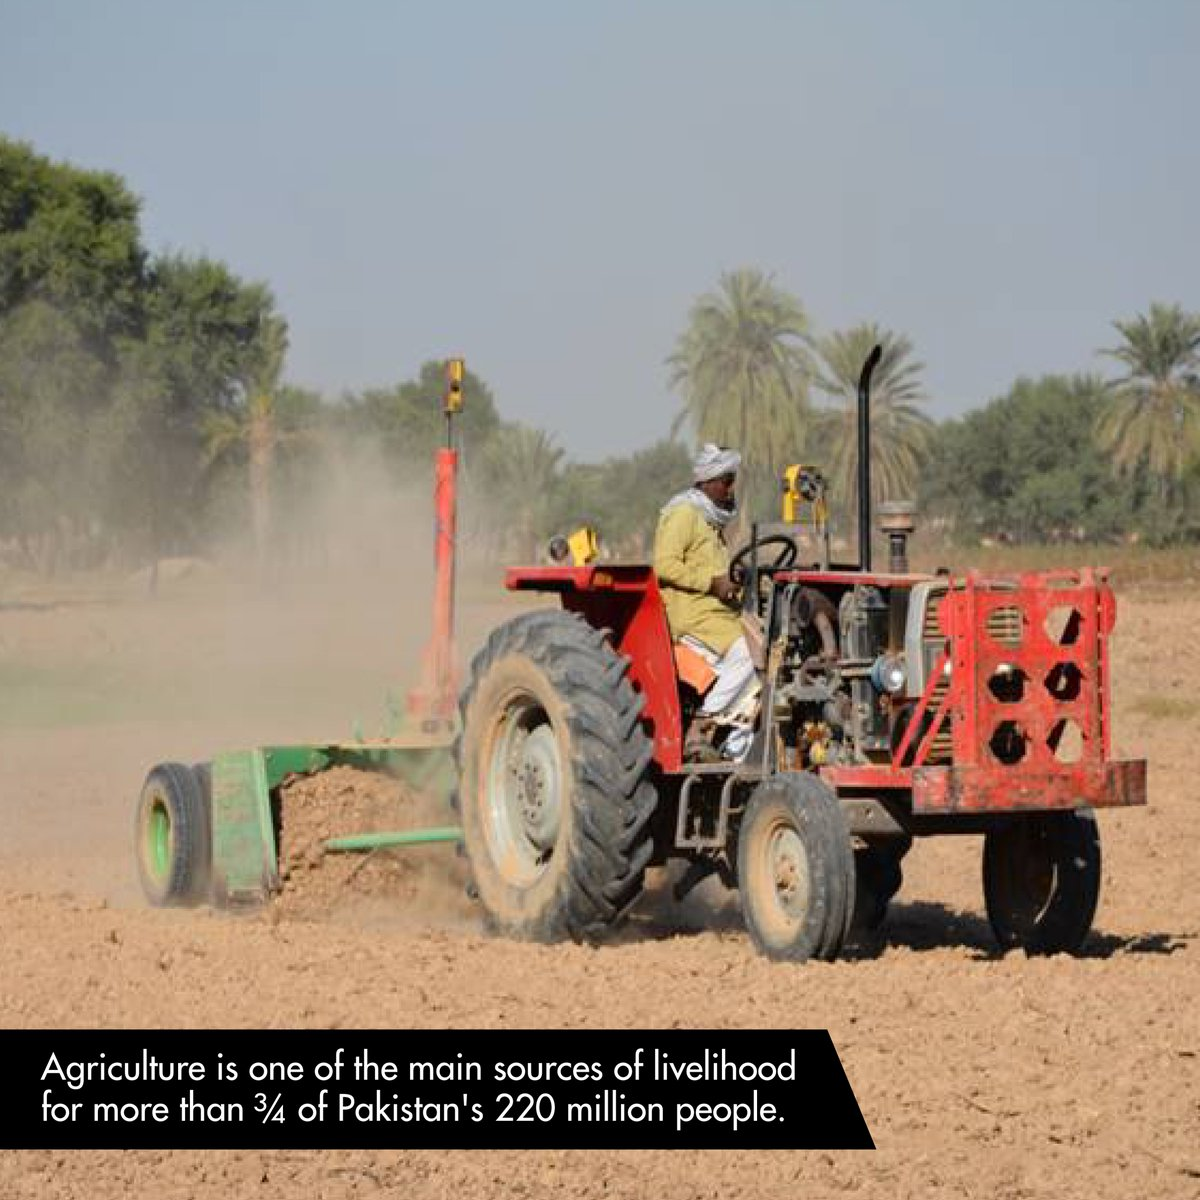 #Pakistan's potential for #food production on the fertile soils of the #Indus Basin is #immeasurable. Yet, agricultural production is far lower than the world's best averages but also among #Asian countries for major commodities.  1/3 https://t.co/wrERJfT3av